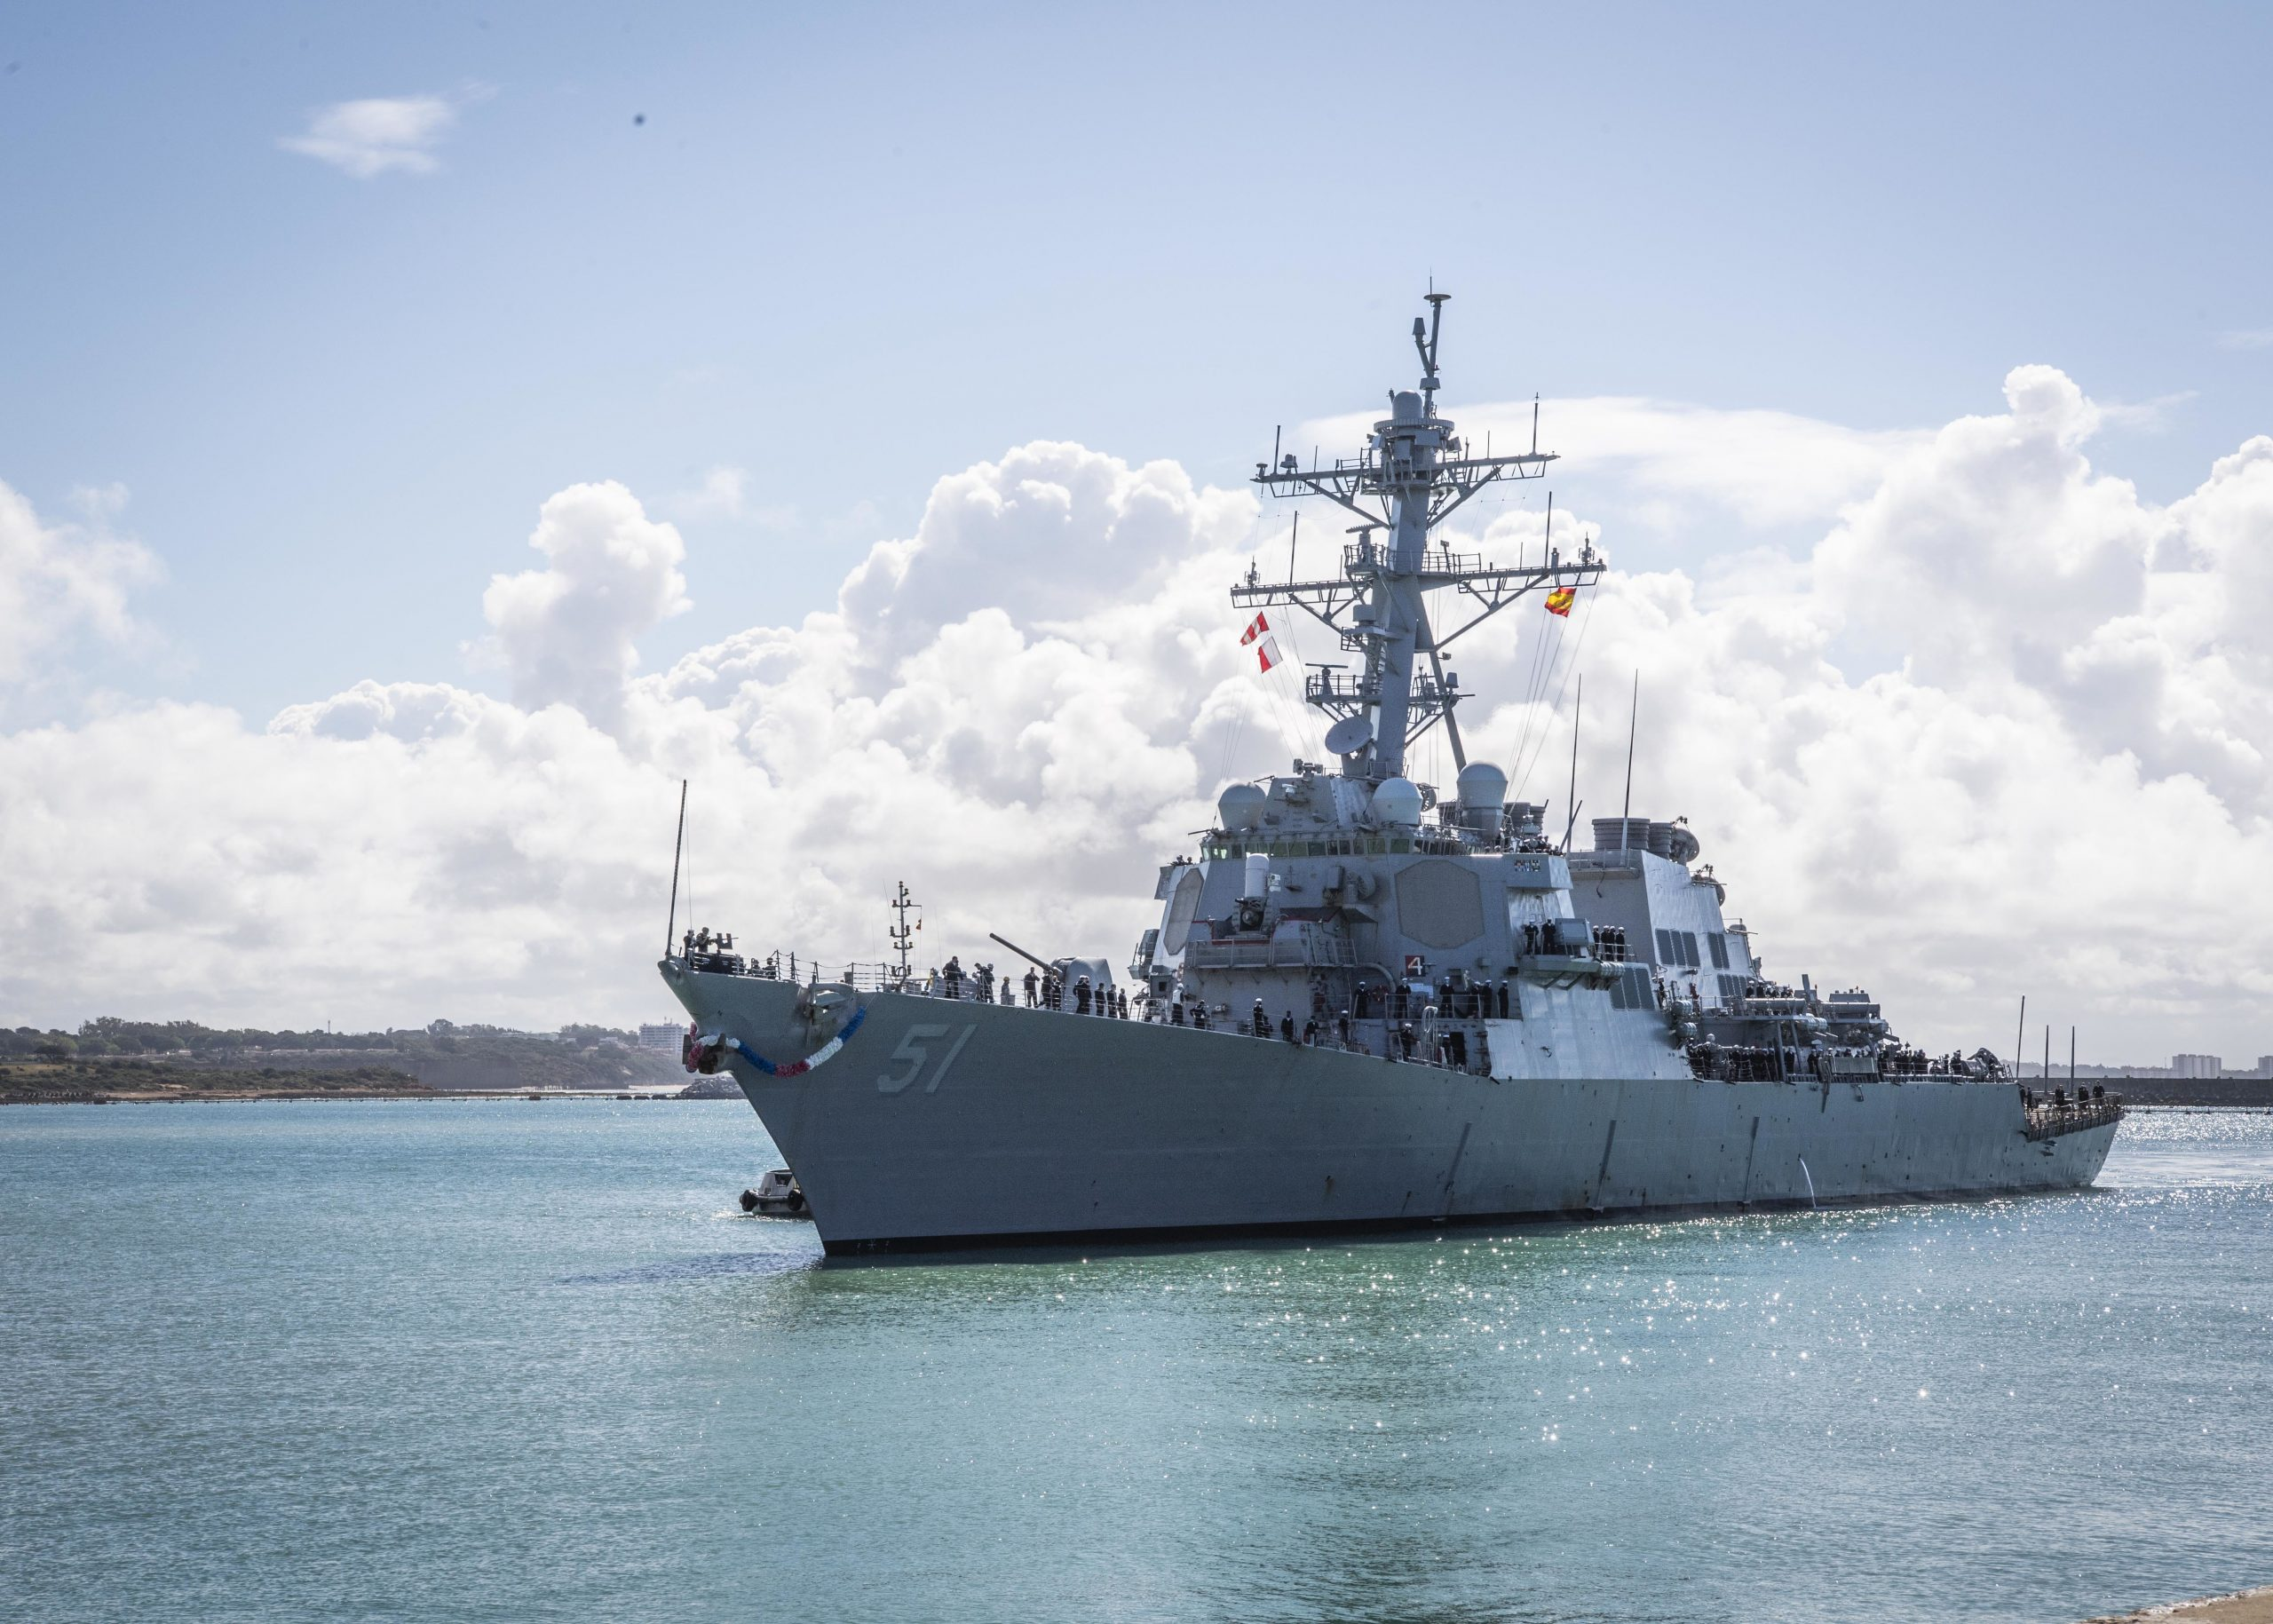 Machinists Union Fighting for Restoration of U.S. Navy Destroyer in Defense Budget